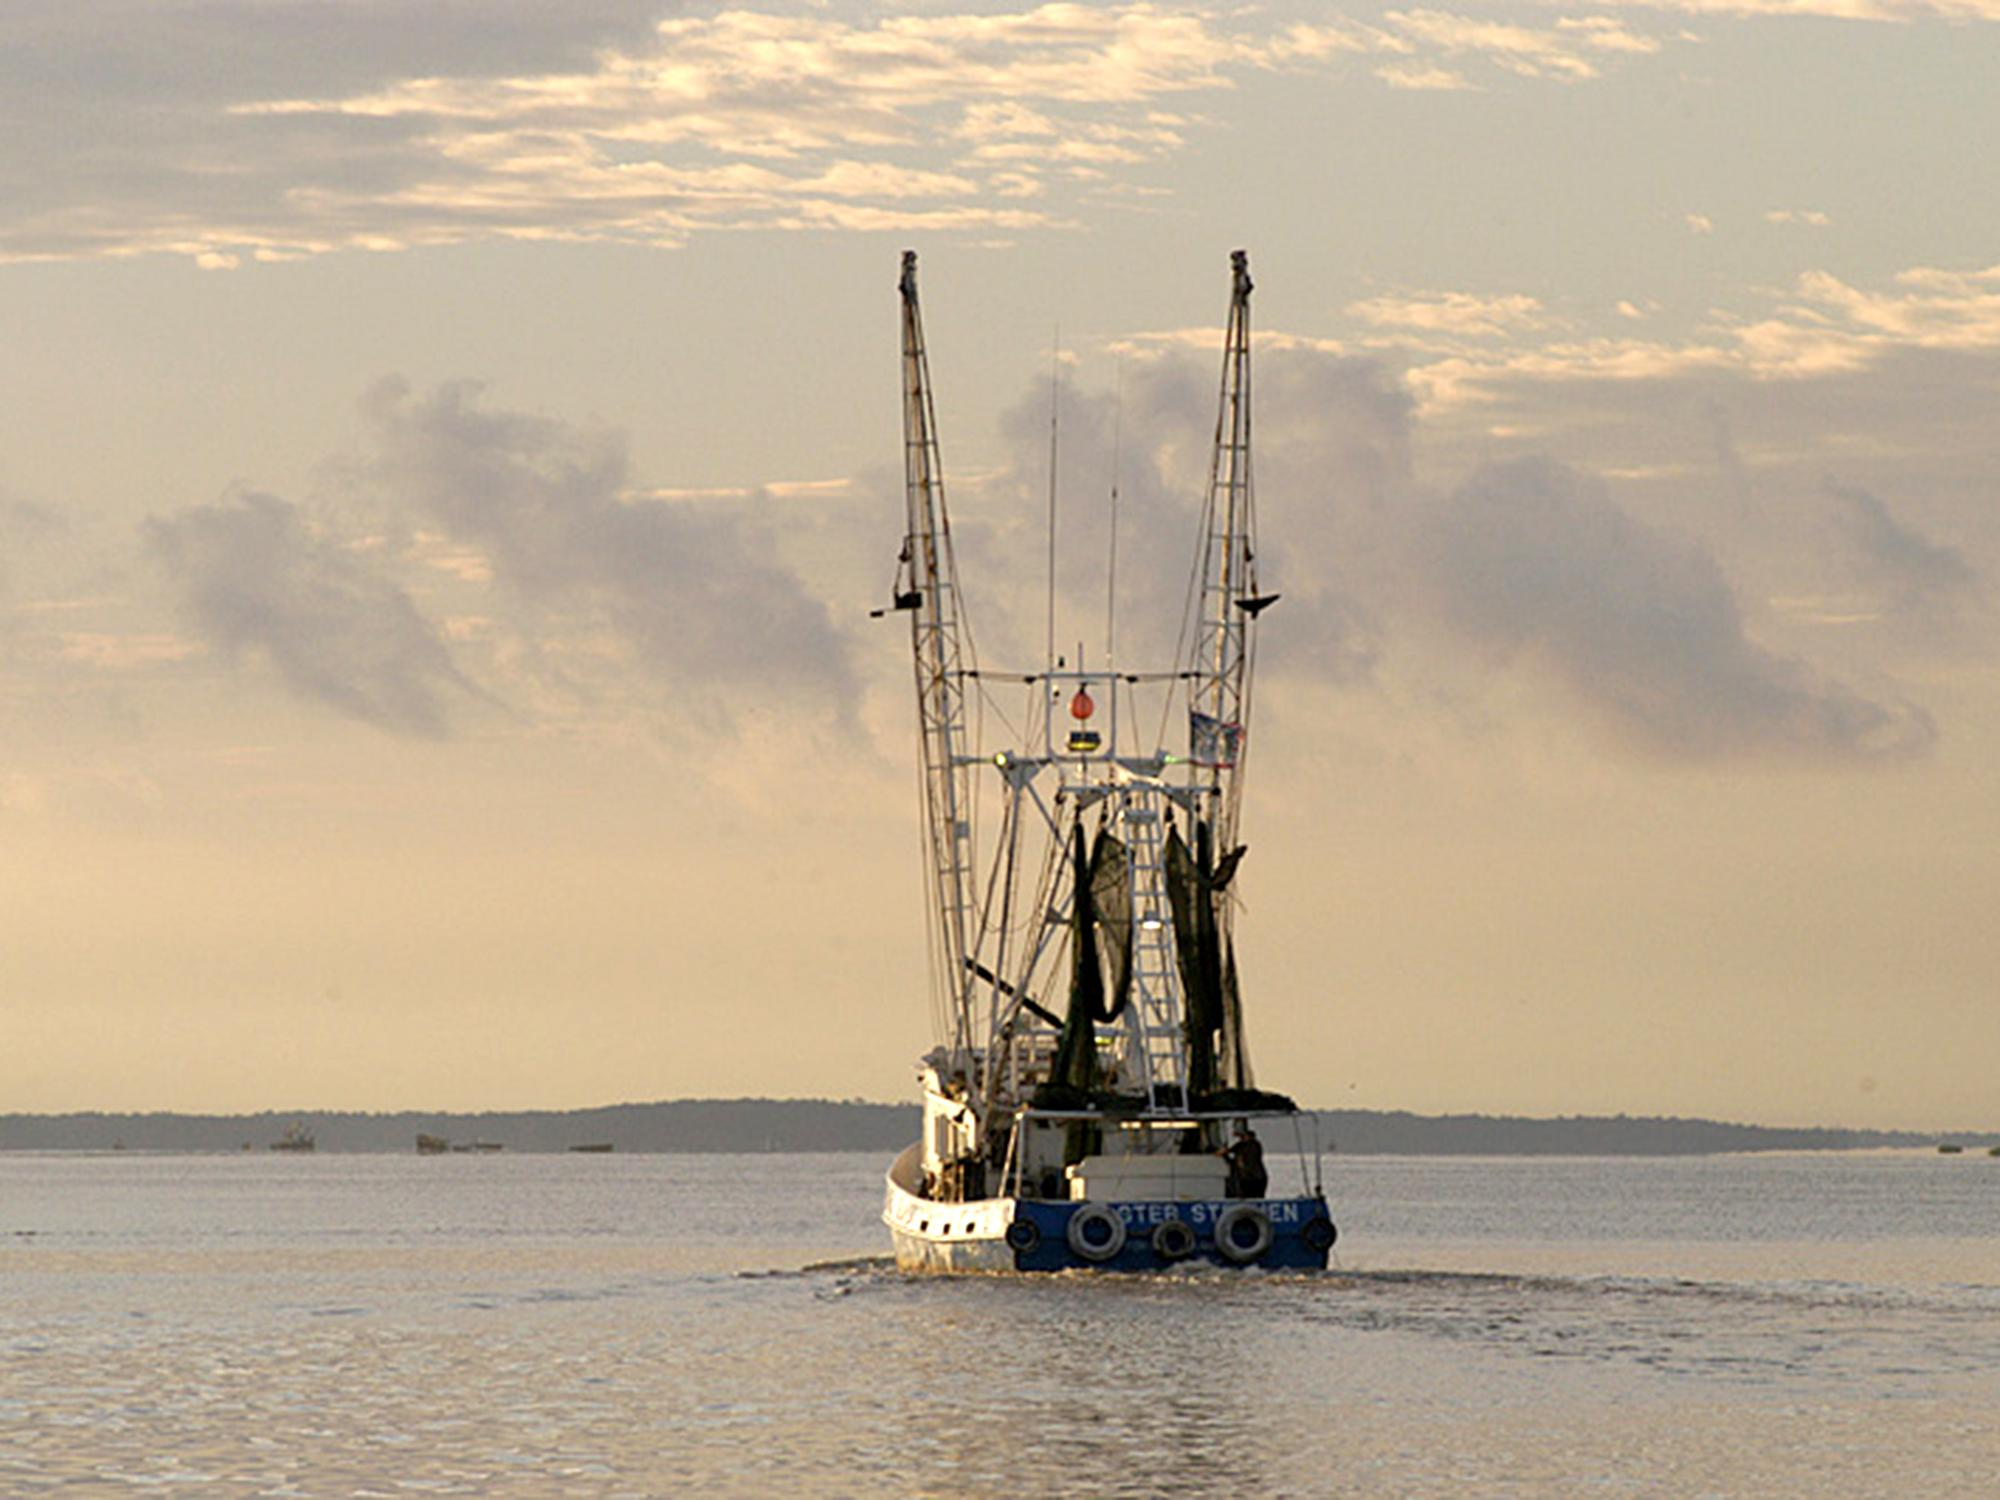 The Master Stephen sets off into the Mississippi Sound off of Biloxi to catch shrimp. (File photo by MSU Extension Service/Dave Burrage)